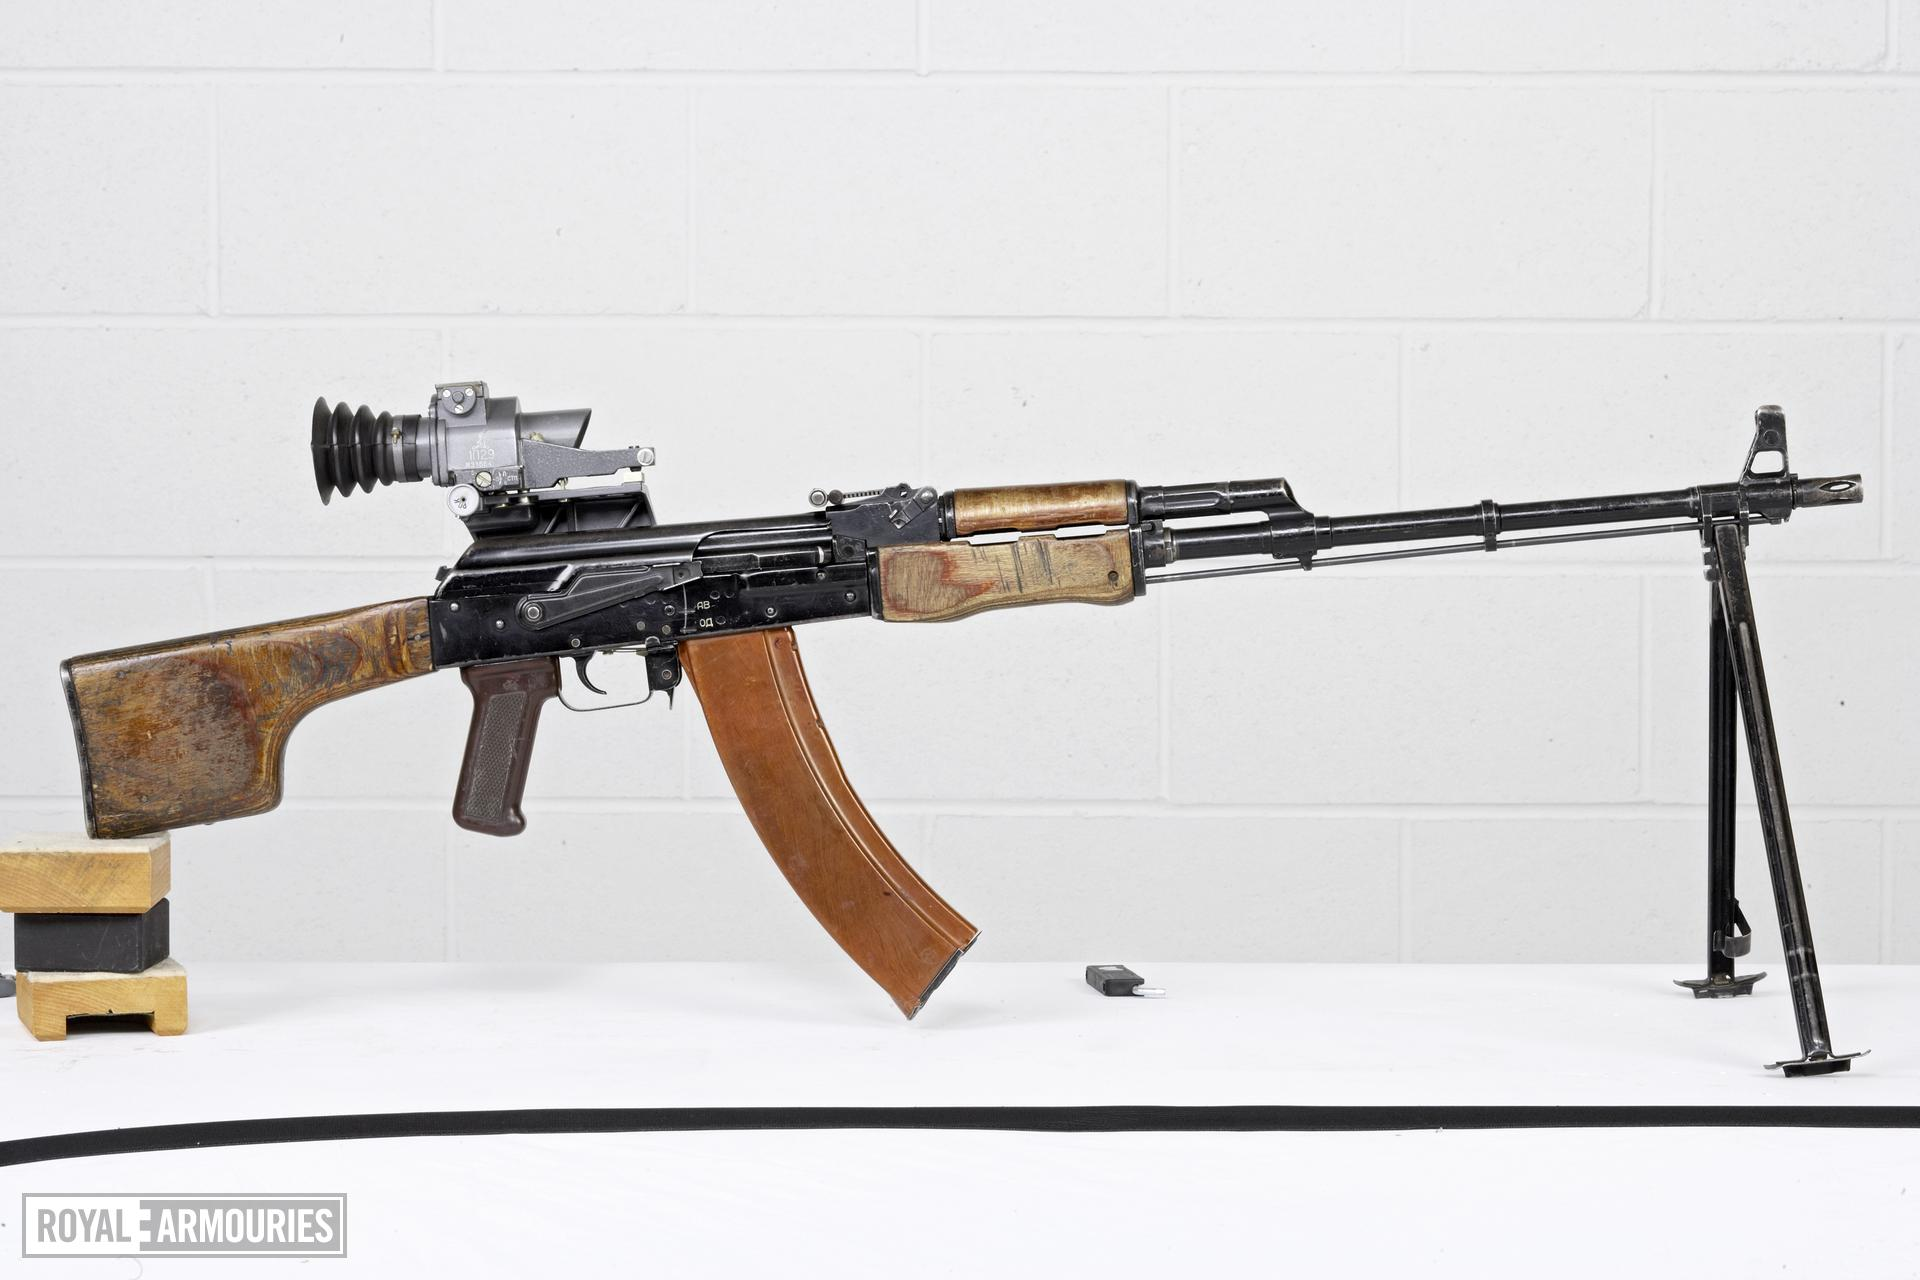 Centrefire automatic light machine gun - Kalashnikov RPK-74